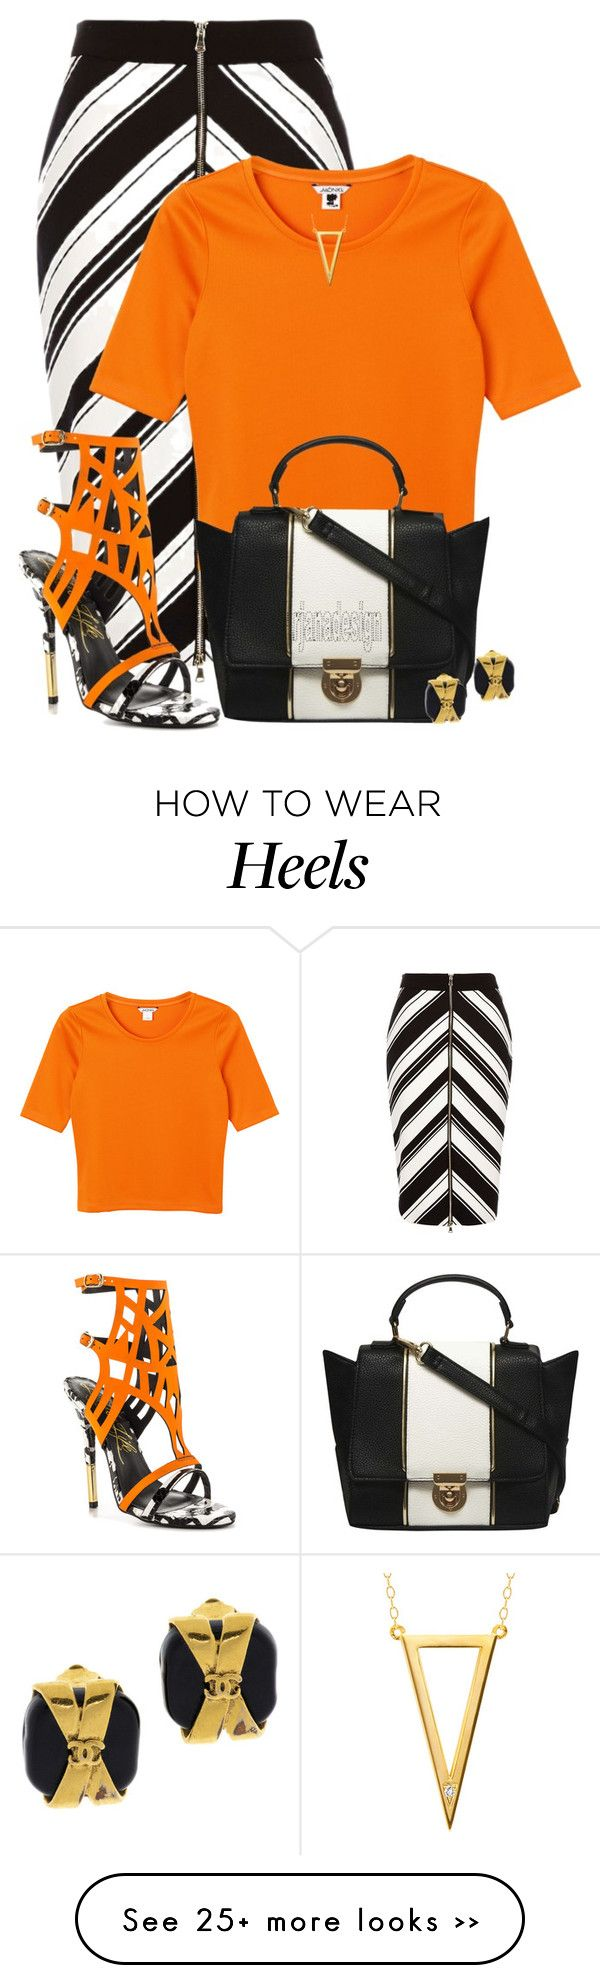 """RIVER ISLAND SKIRT"" by arjanadesign on Polyvore featuring River Island, Monki, Lust For Life, Dorothy Perkins, Ella Poe, Chanel, WorkWear, RiverIsland and DorothyPerkins"